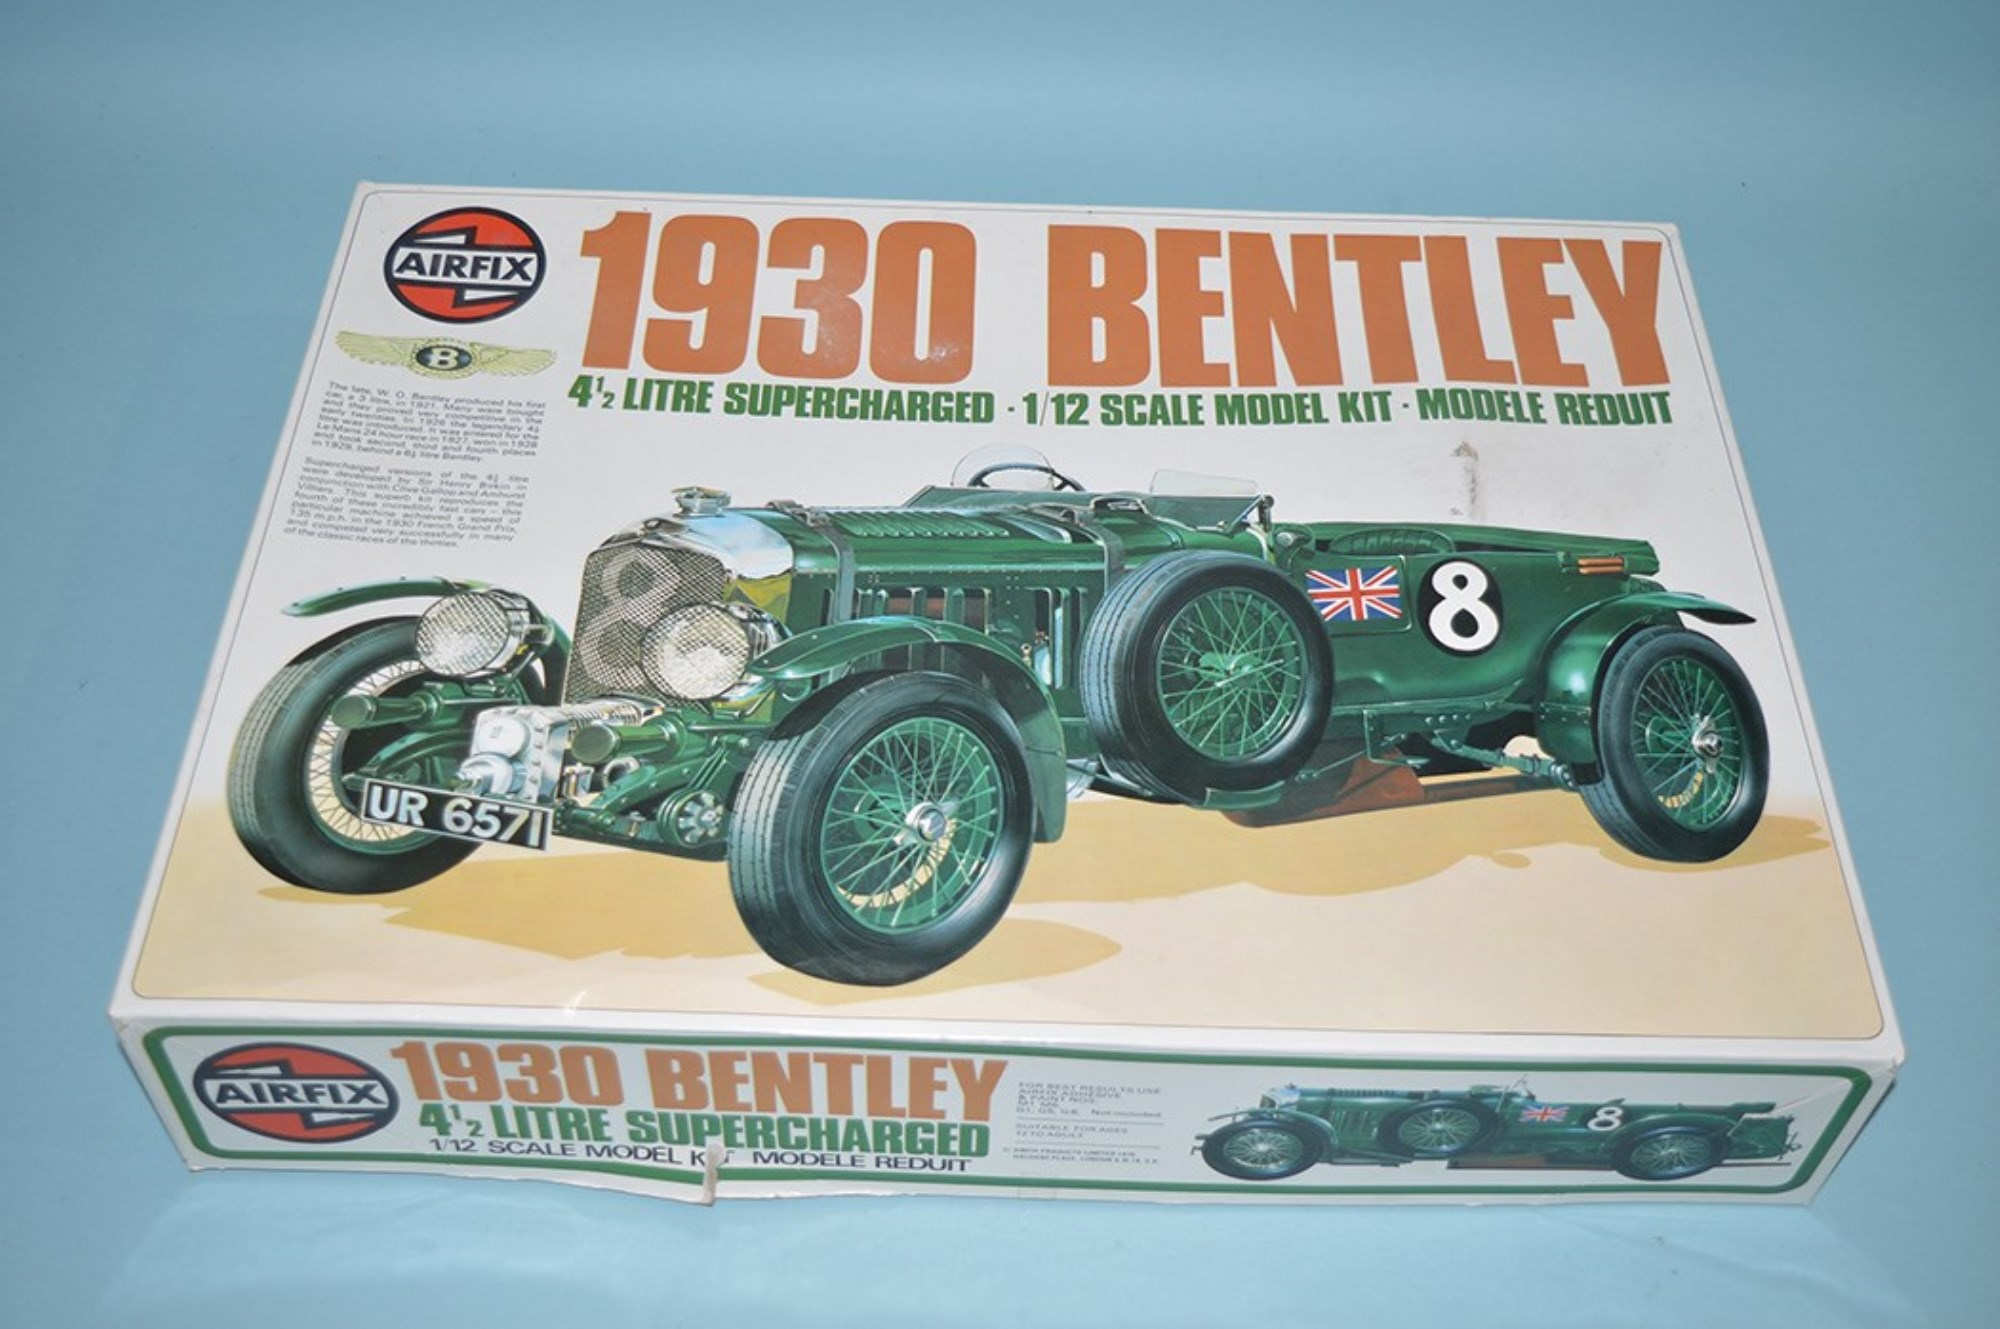 Airfix model constructor kit, series 20, 1:12 scale: 1930 Bentley 4 1/2 litre Supercharged, 20440.